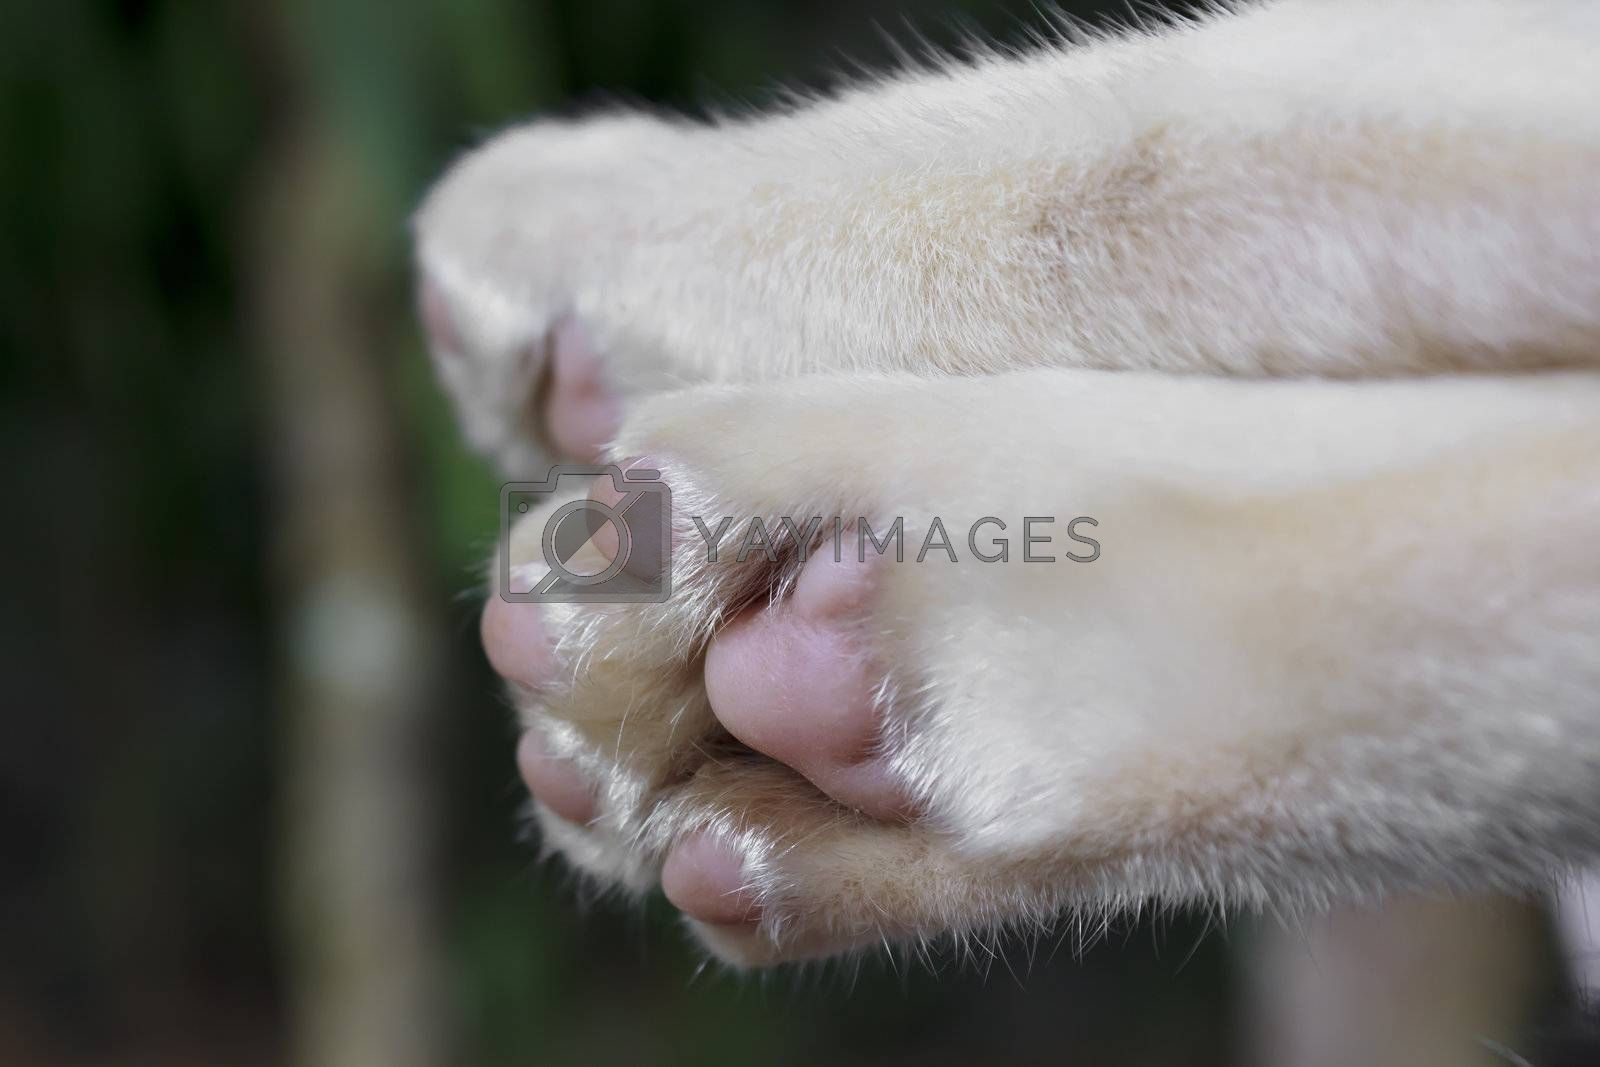 Paw of Siamese cat foot